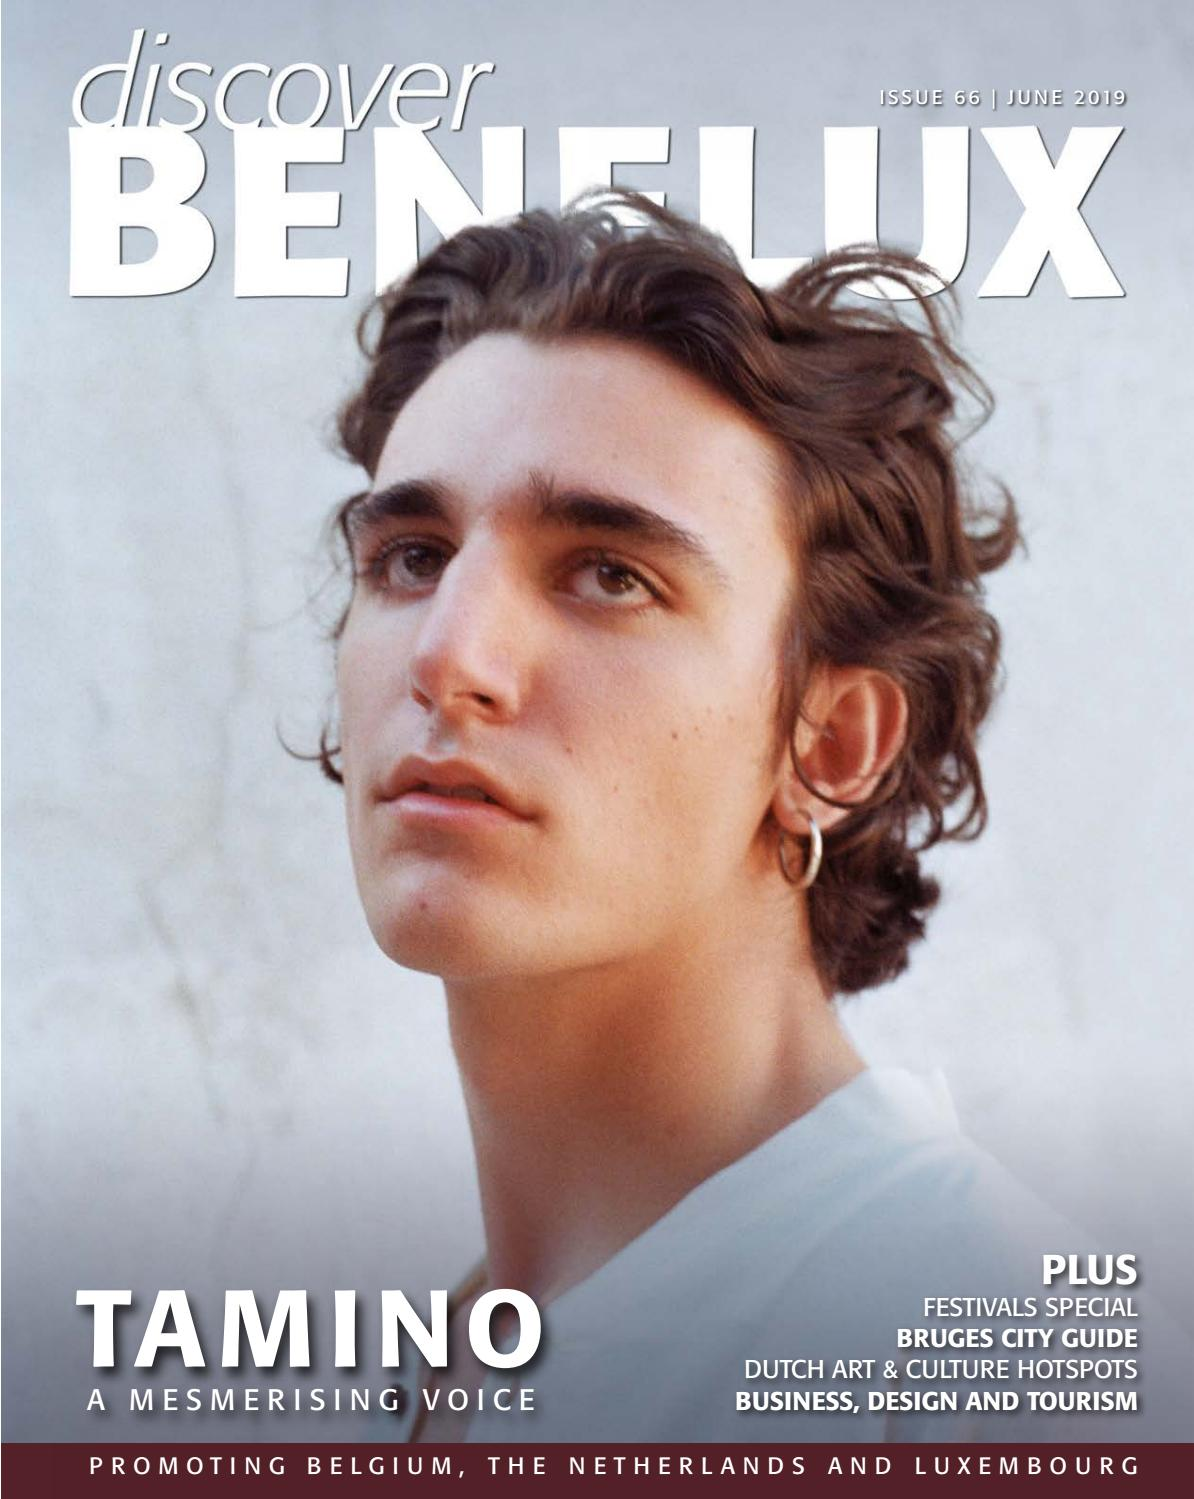 Discover Benelux, Issue 66, June 2019 by Scan Group - issuu